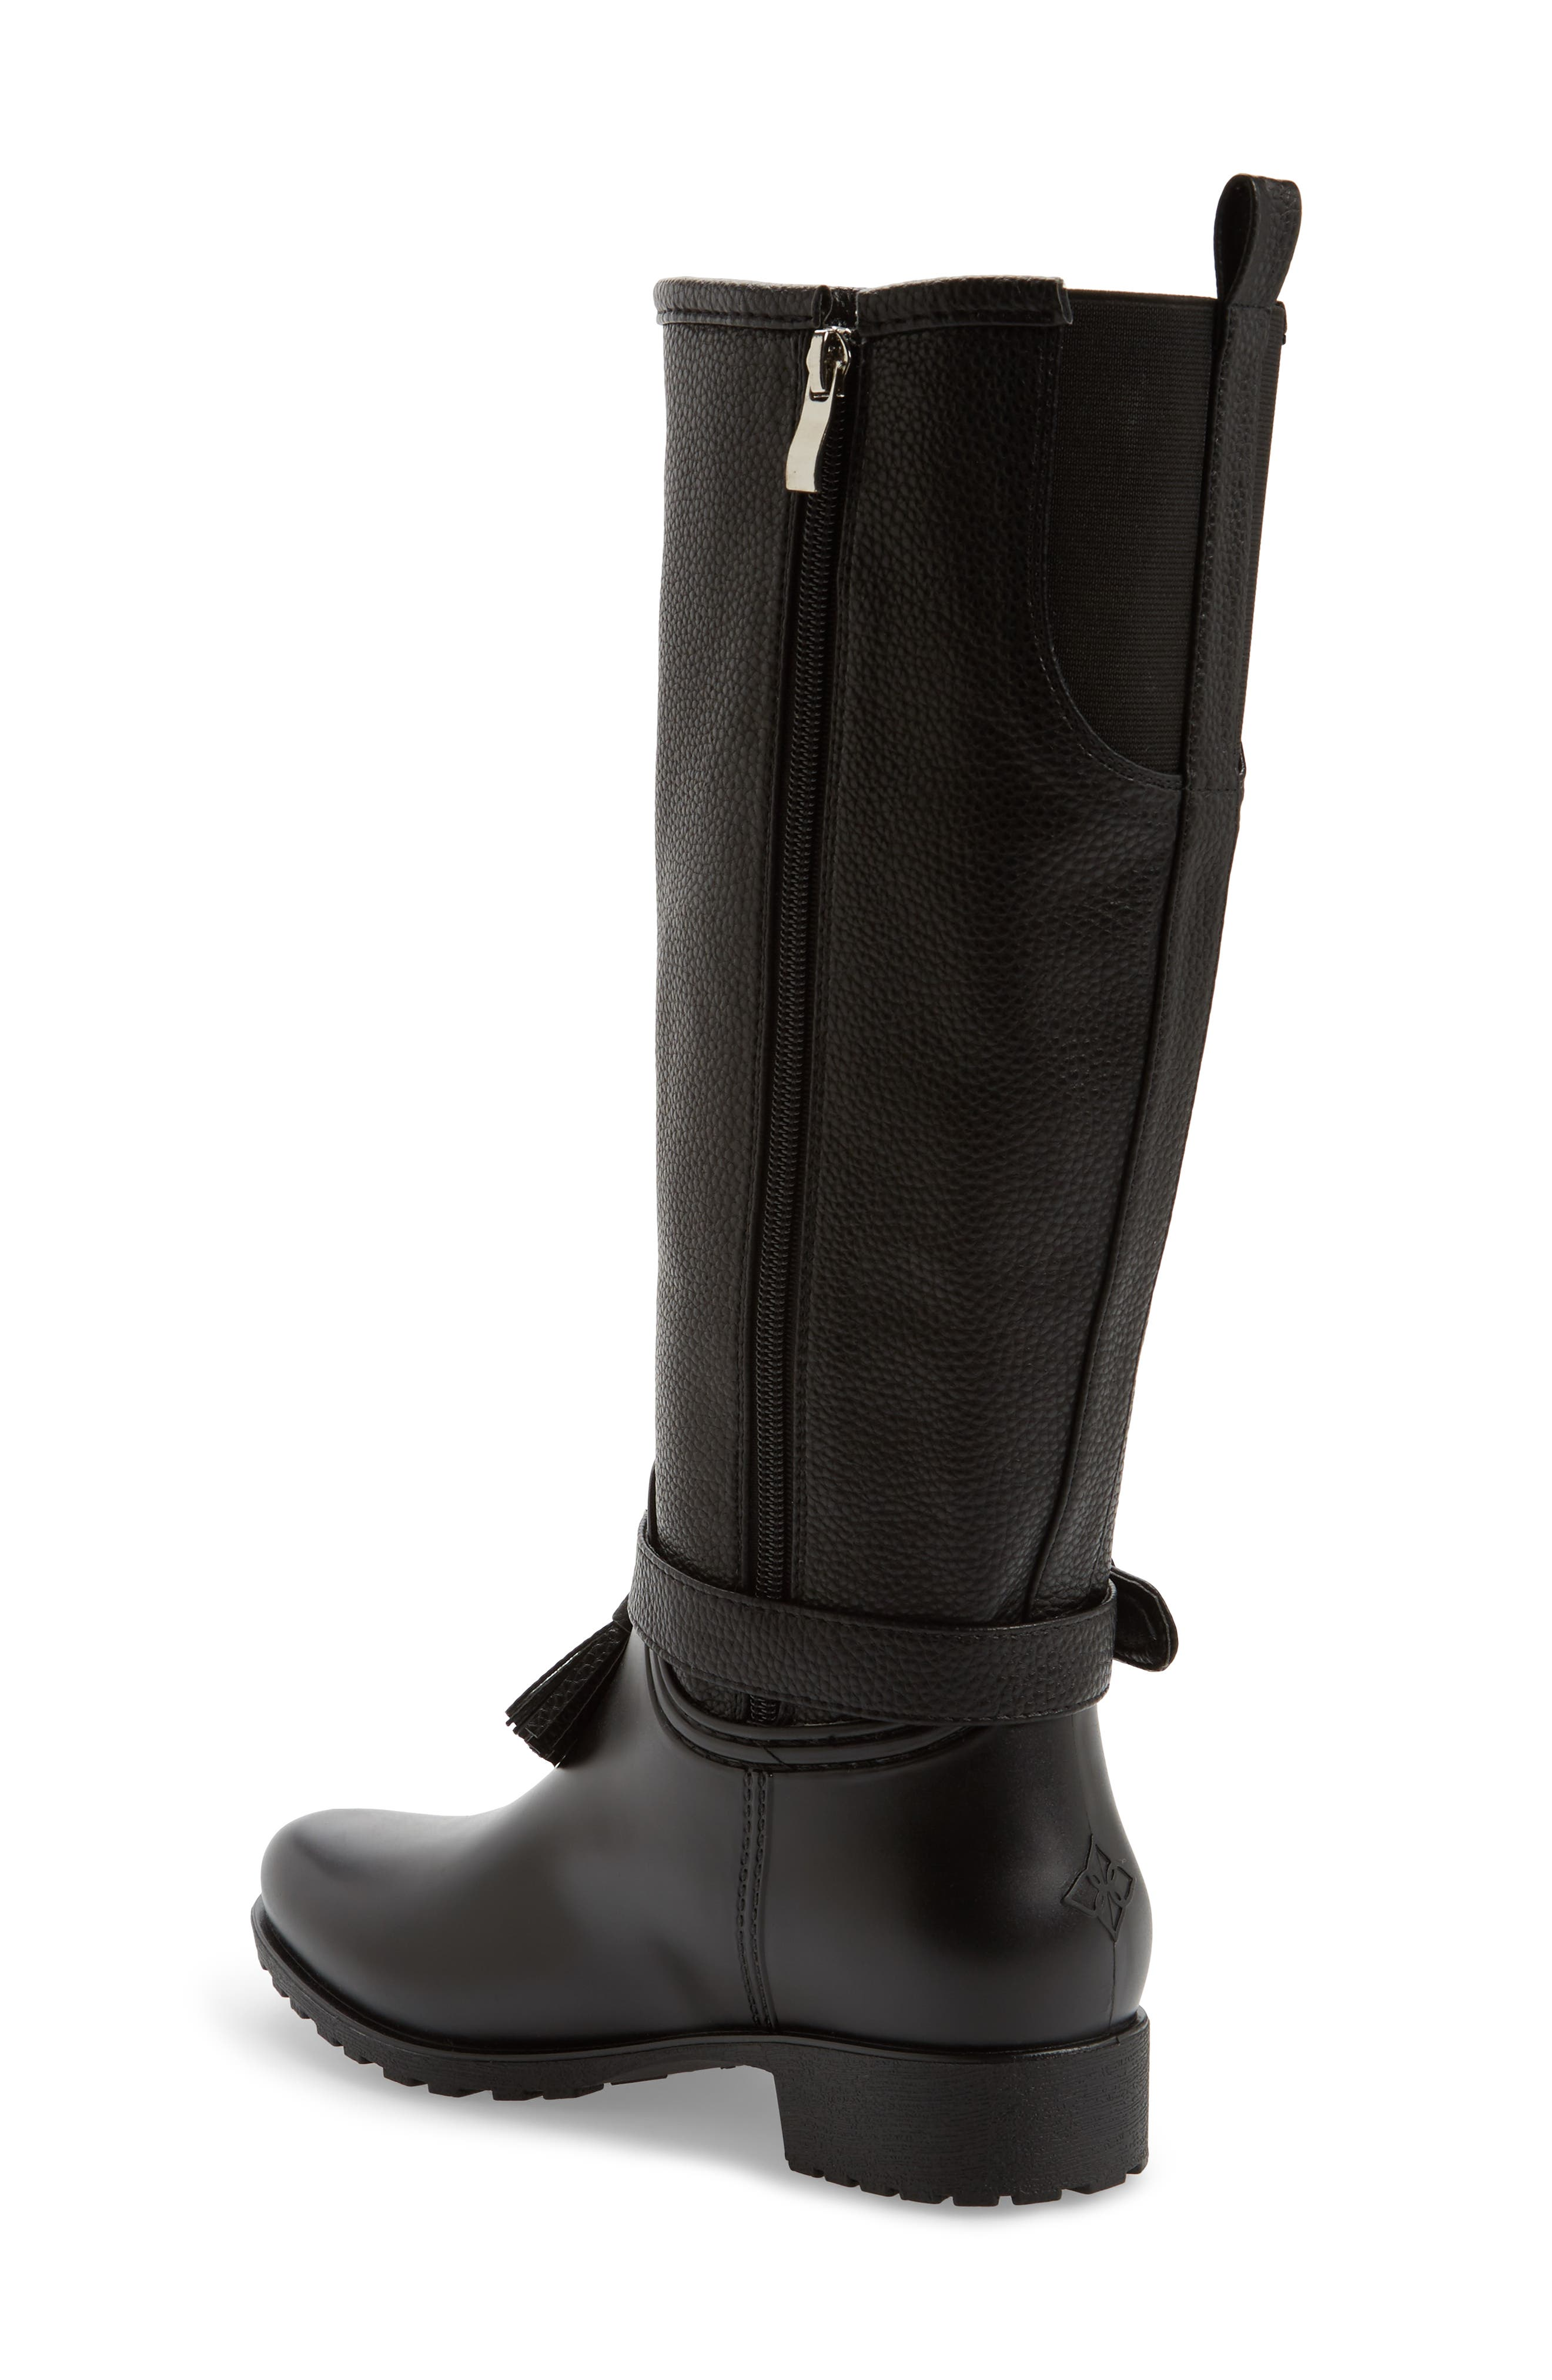 DÄV, Inverness Faux Shearling Lined Water Resistant Boot, Alternate thumbnail 2, color, BLACK